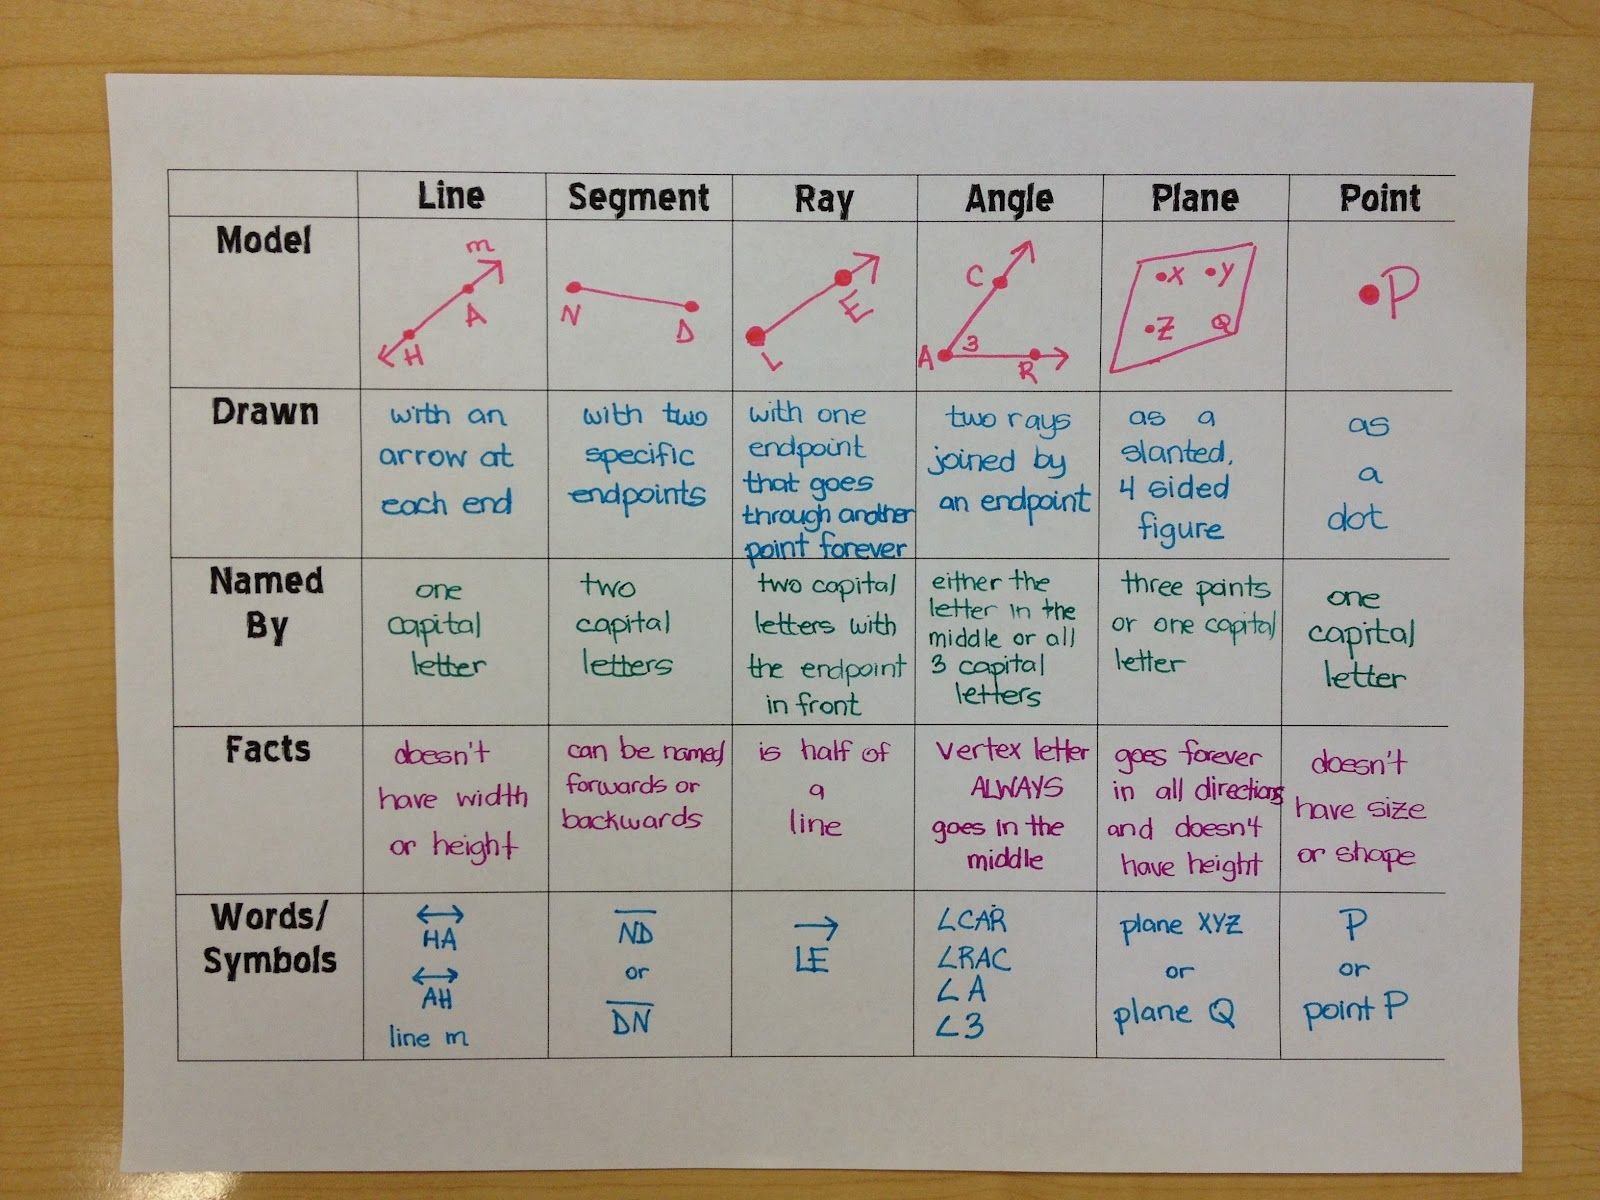 Line Segment Ray Angle Plane Point Graphic Organizer – Getting into Shapes Worksheet Answers